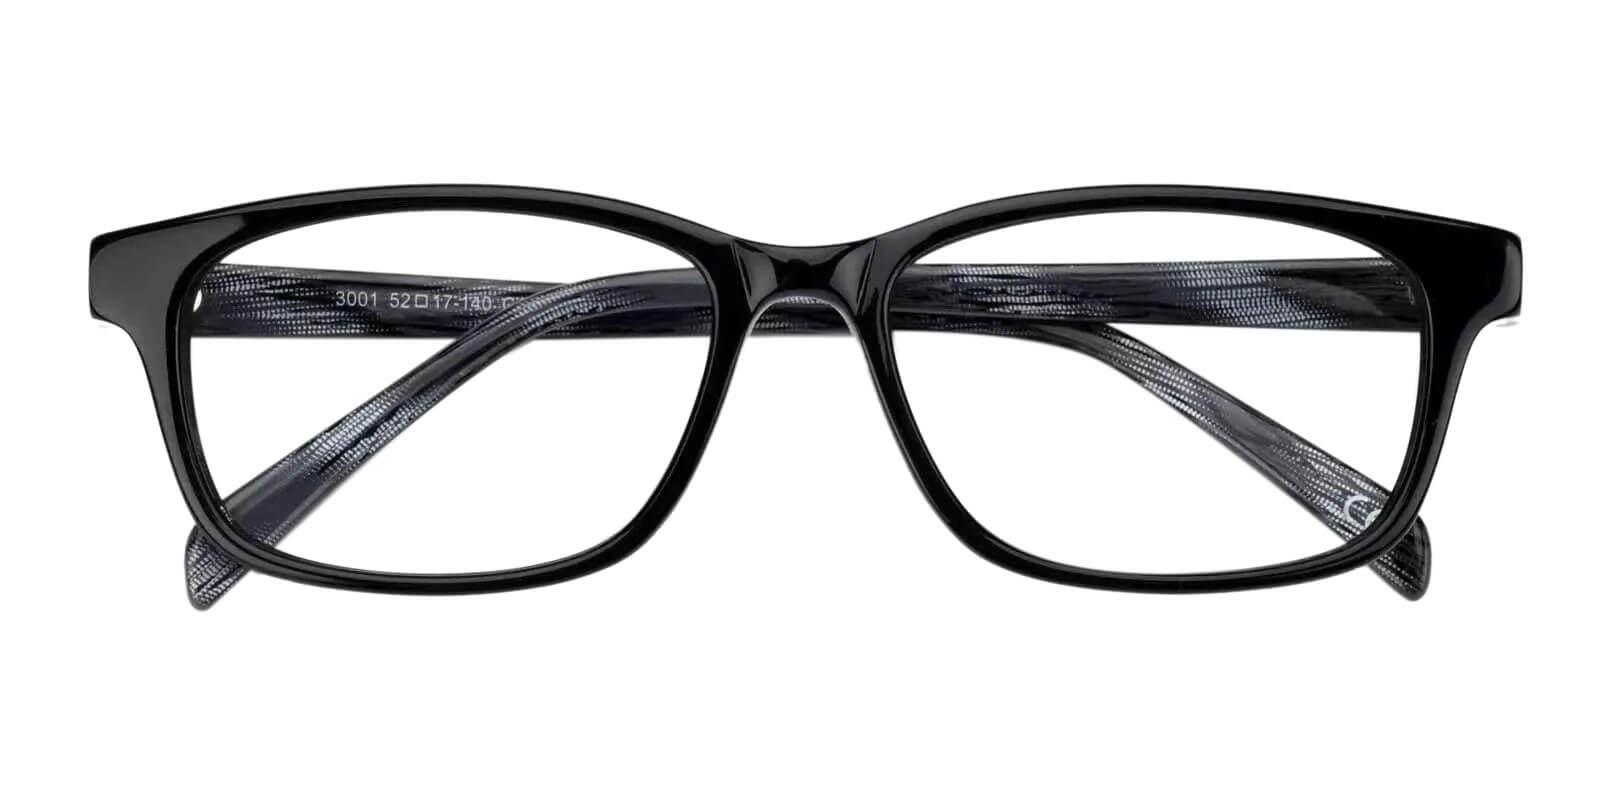 Emmi Black Acetate Eyeglasses , Fashion , UniversalBridgeFit Frames from ABBE Glasses